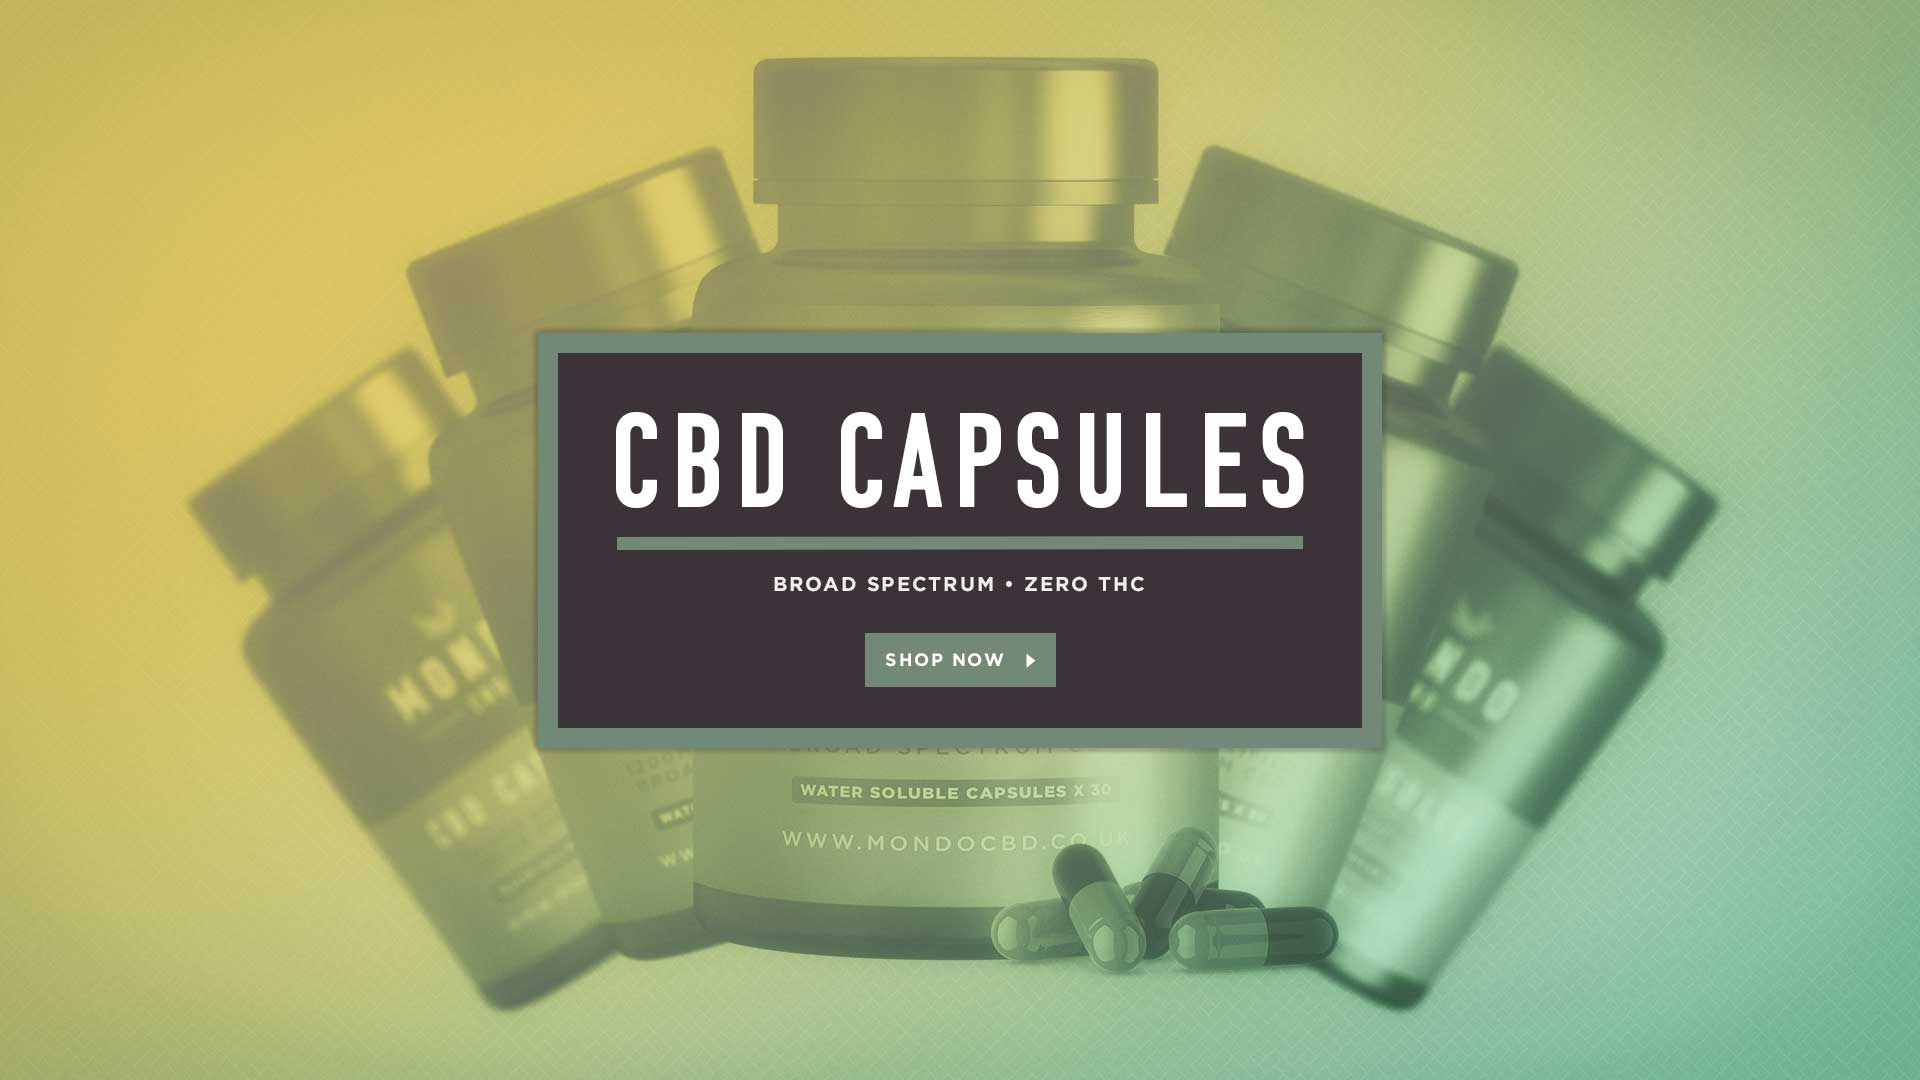 Shop for CBD Capsules at mondocbd.co.uk